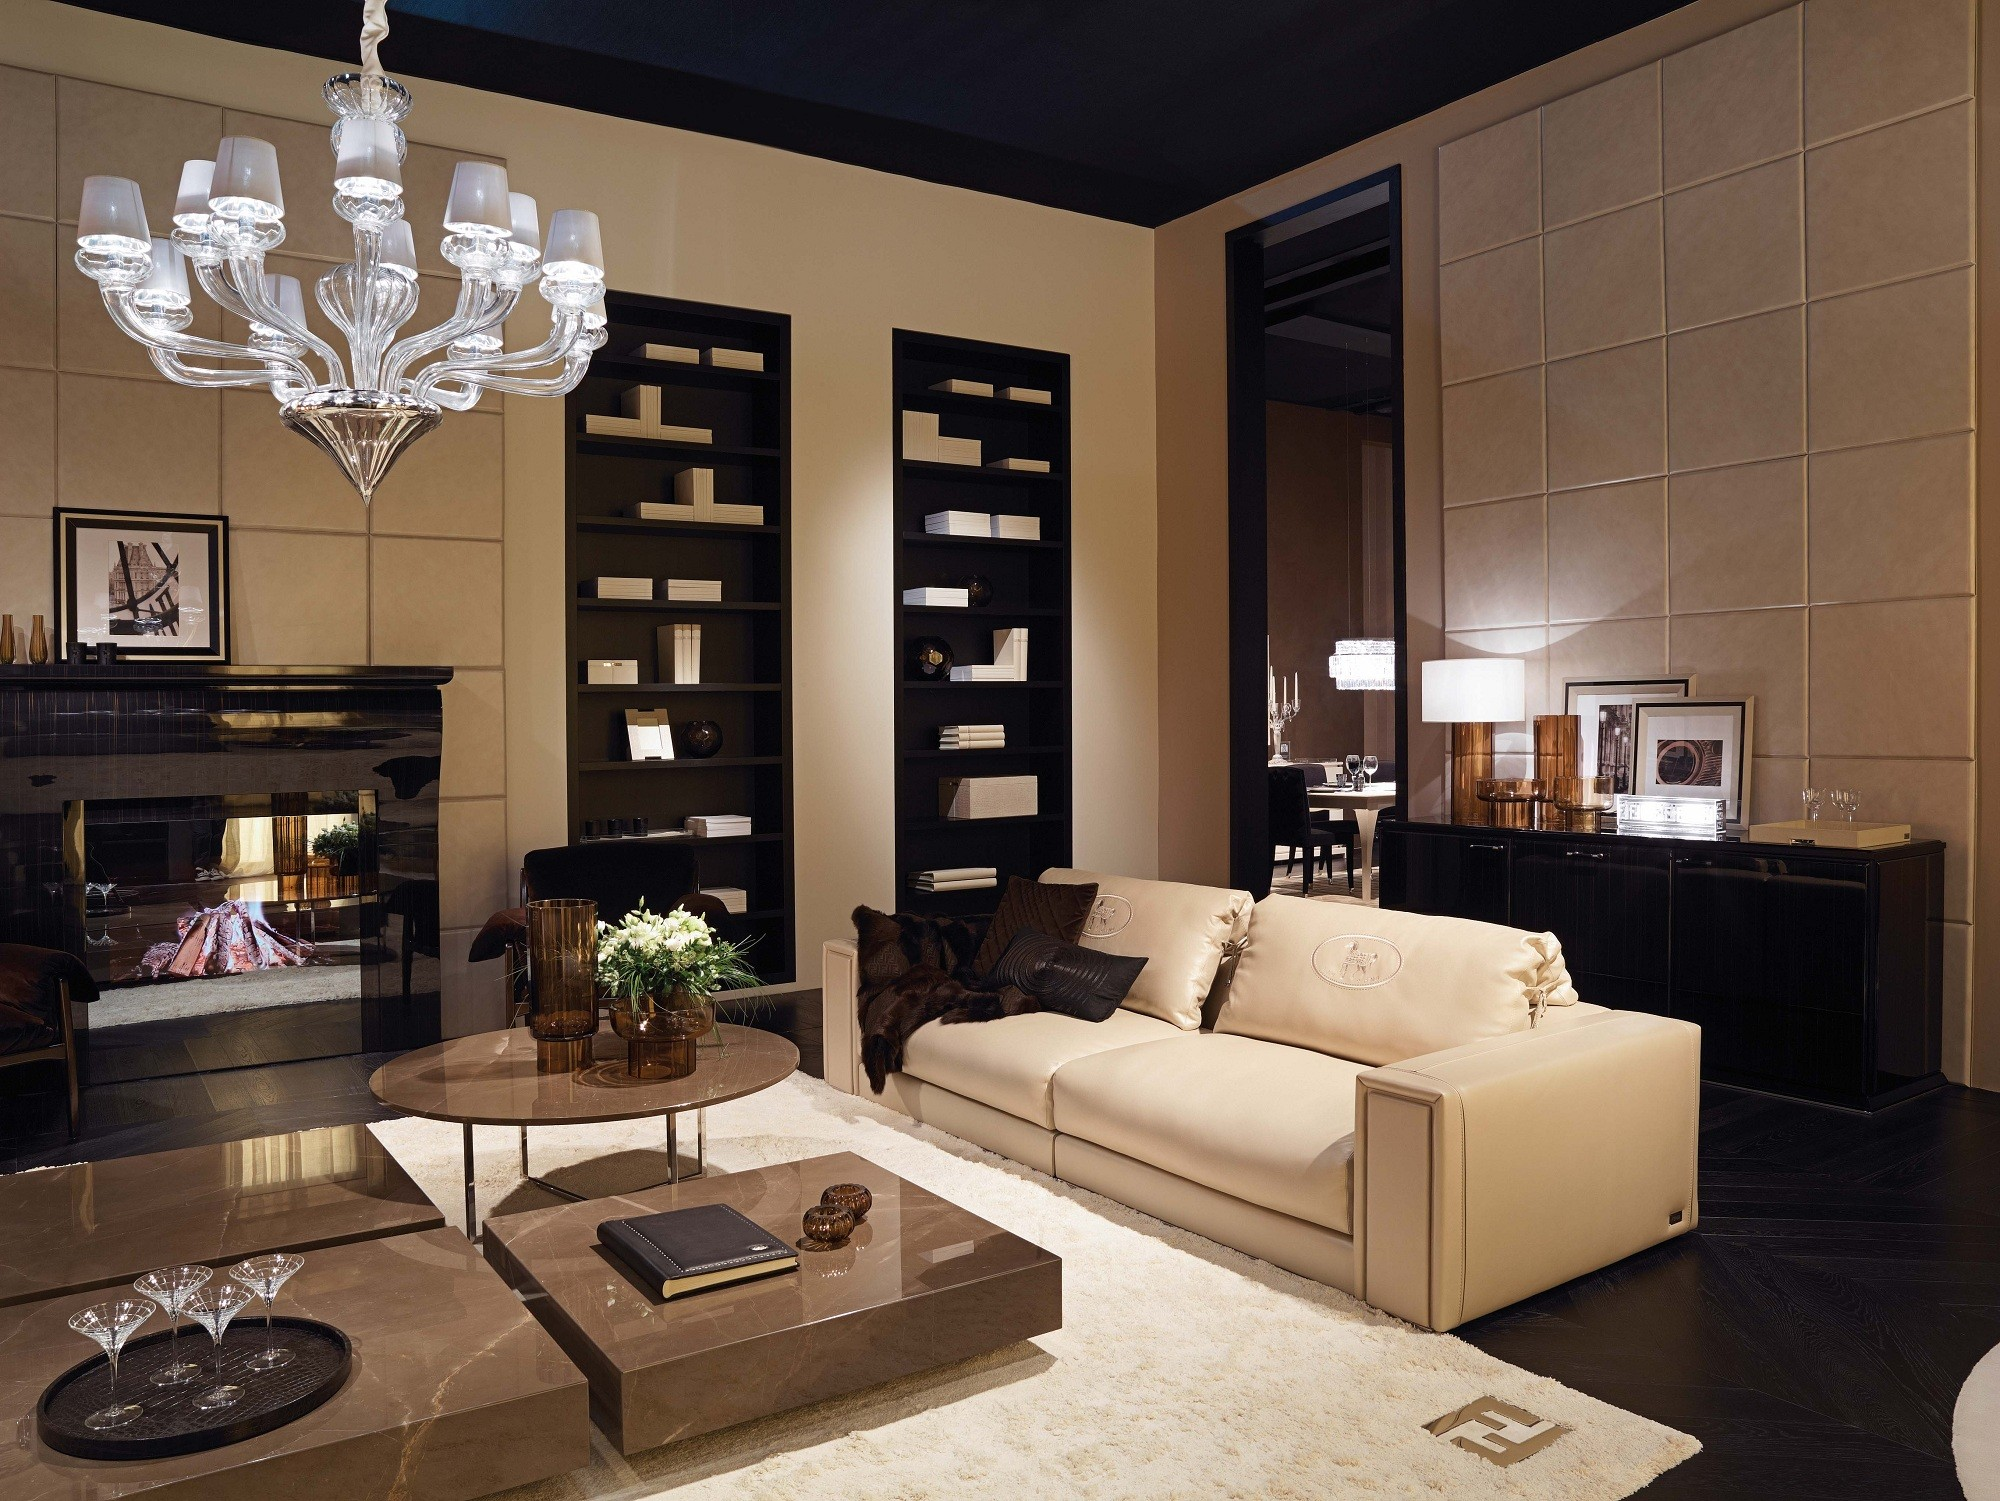 dc4bf19f5c Fendi Casa Furniture is renowned all around the world among those that are  looking for excellence and luxury. The Casa Classic Collection is  particularly ...